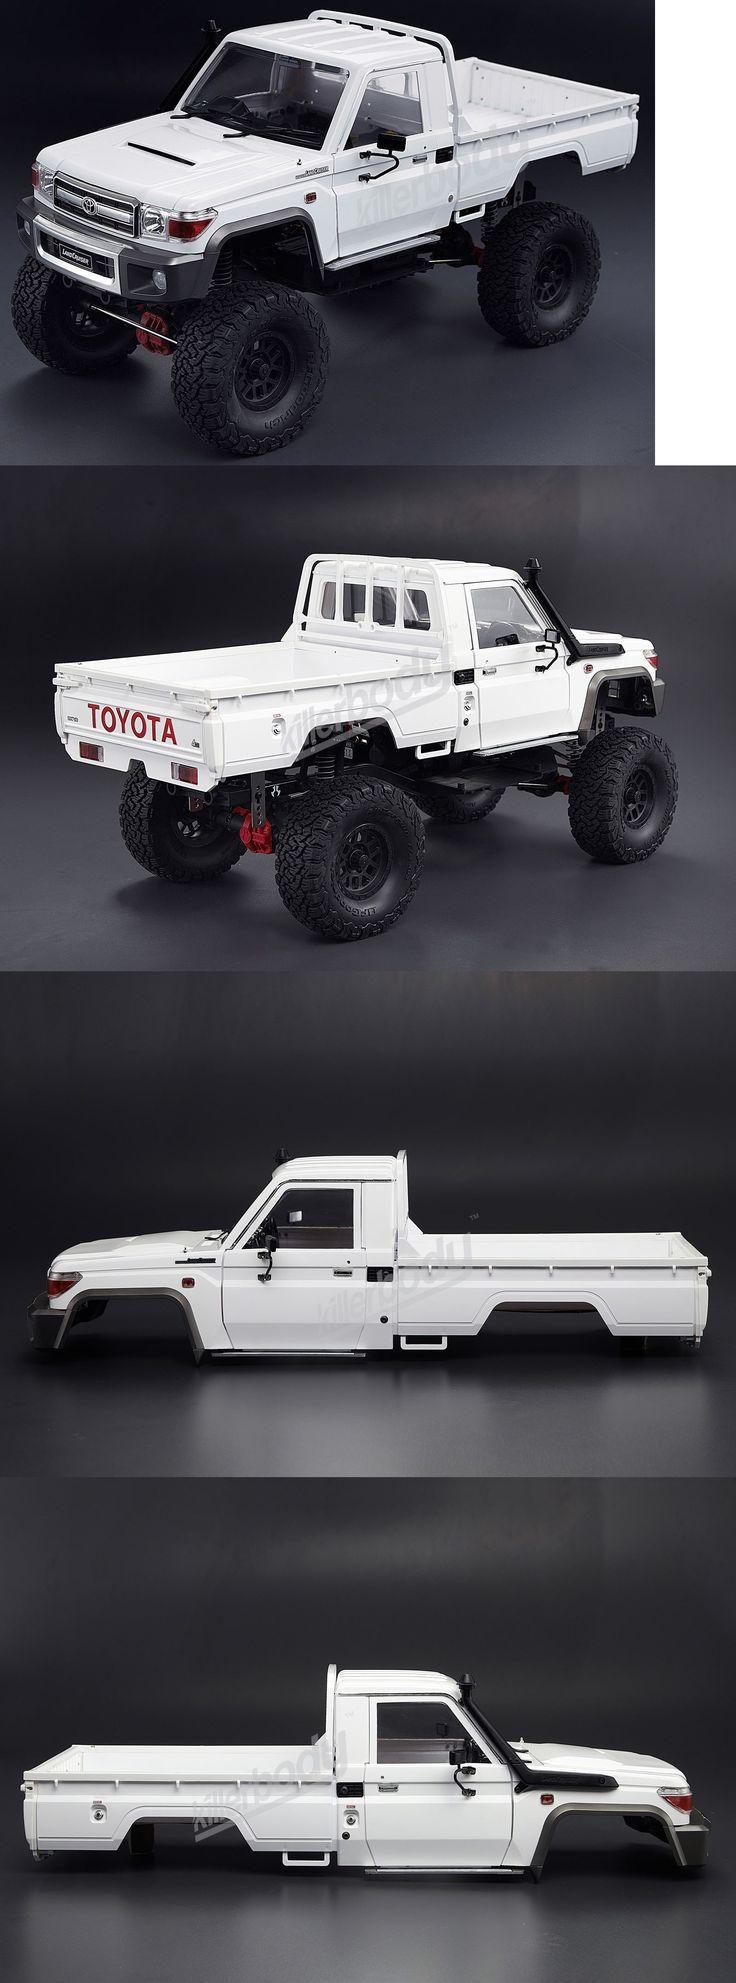 Cars Trucks and Motorcycles 34061: Rc 1 10 Truck Hard Body Shell Toyota Land Cruiser 70 Pick Up For Axial + Snorkle -> BUY IT NOW ONLY: $135.99 on eBay!